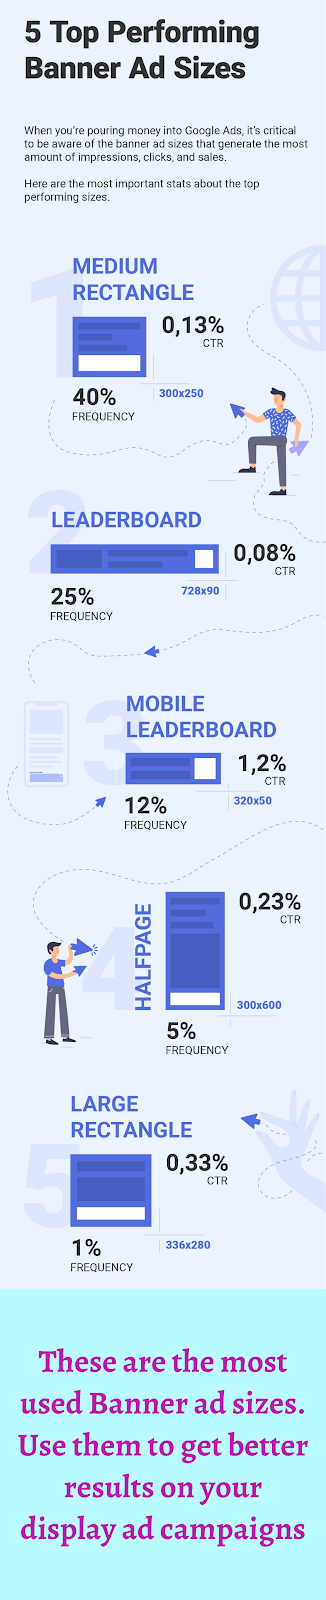 Top 5 most used banner ad sizes